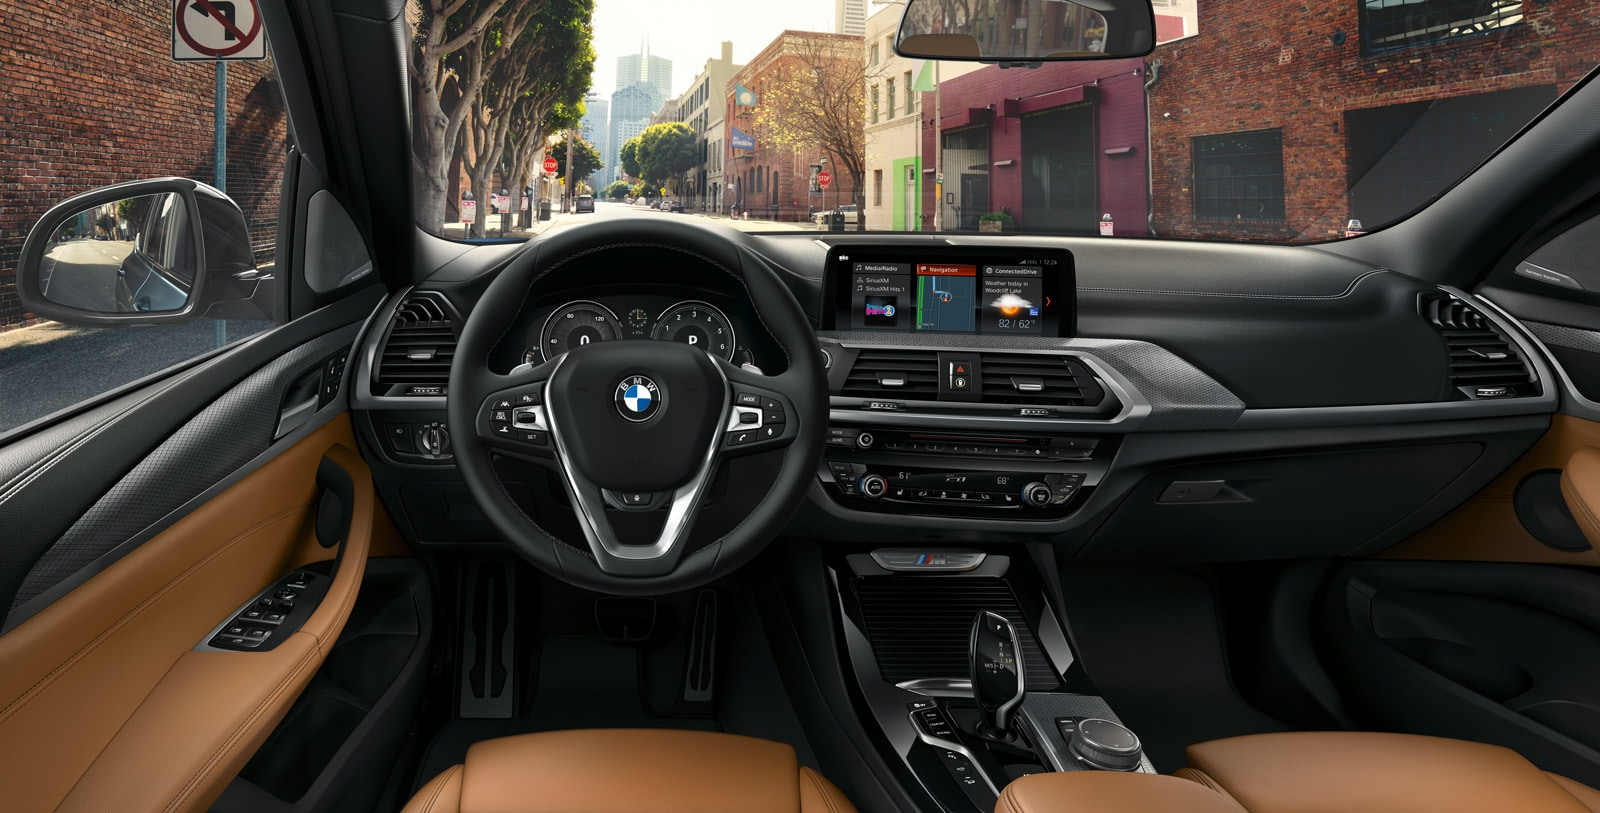 Interior of a 2019 BMW X3 showing driver's point of view